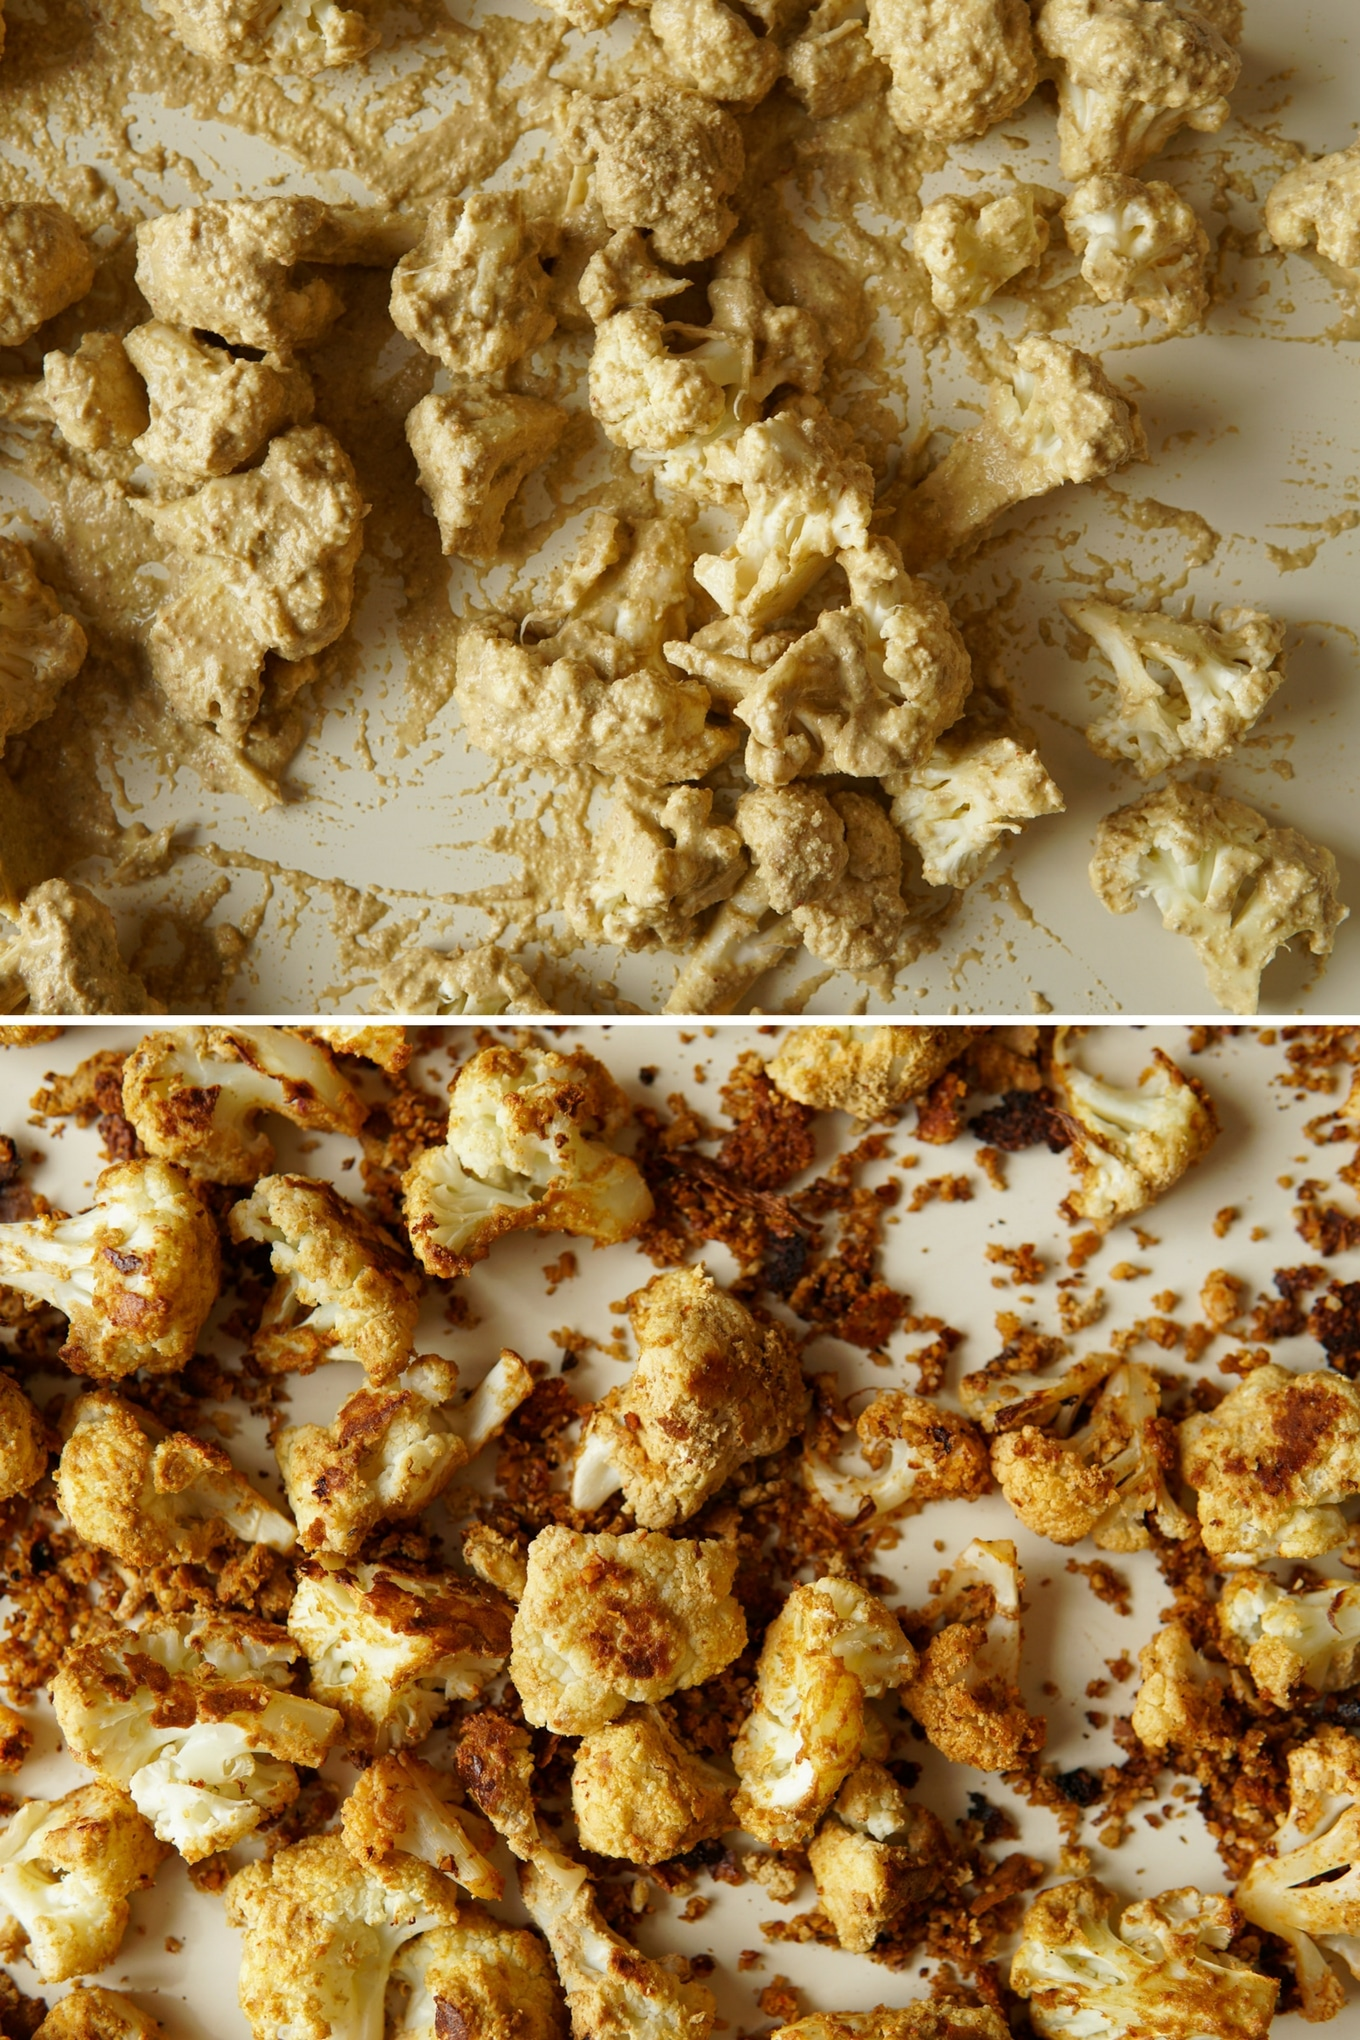 cauliflower battered with pepitas and chipotle puree, then baked until crispy